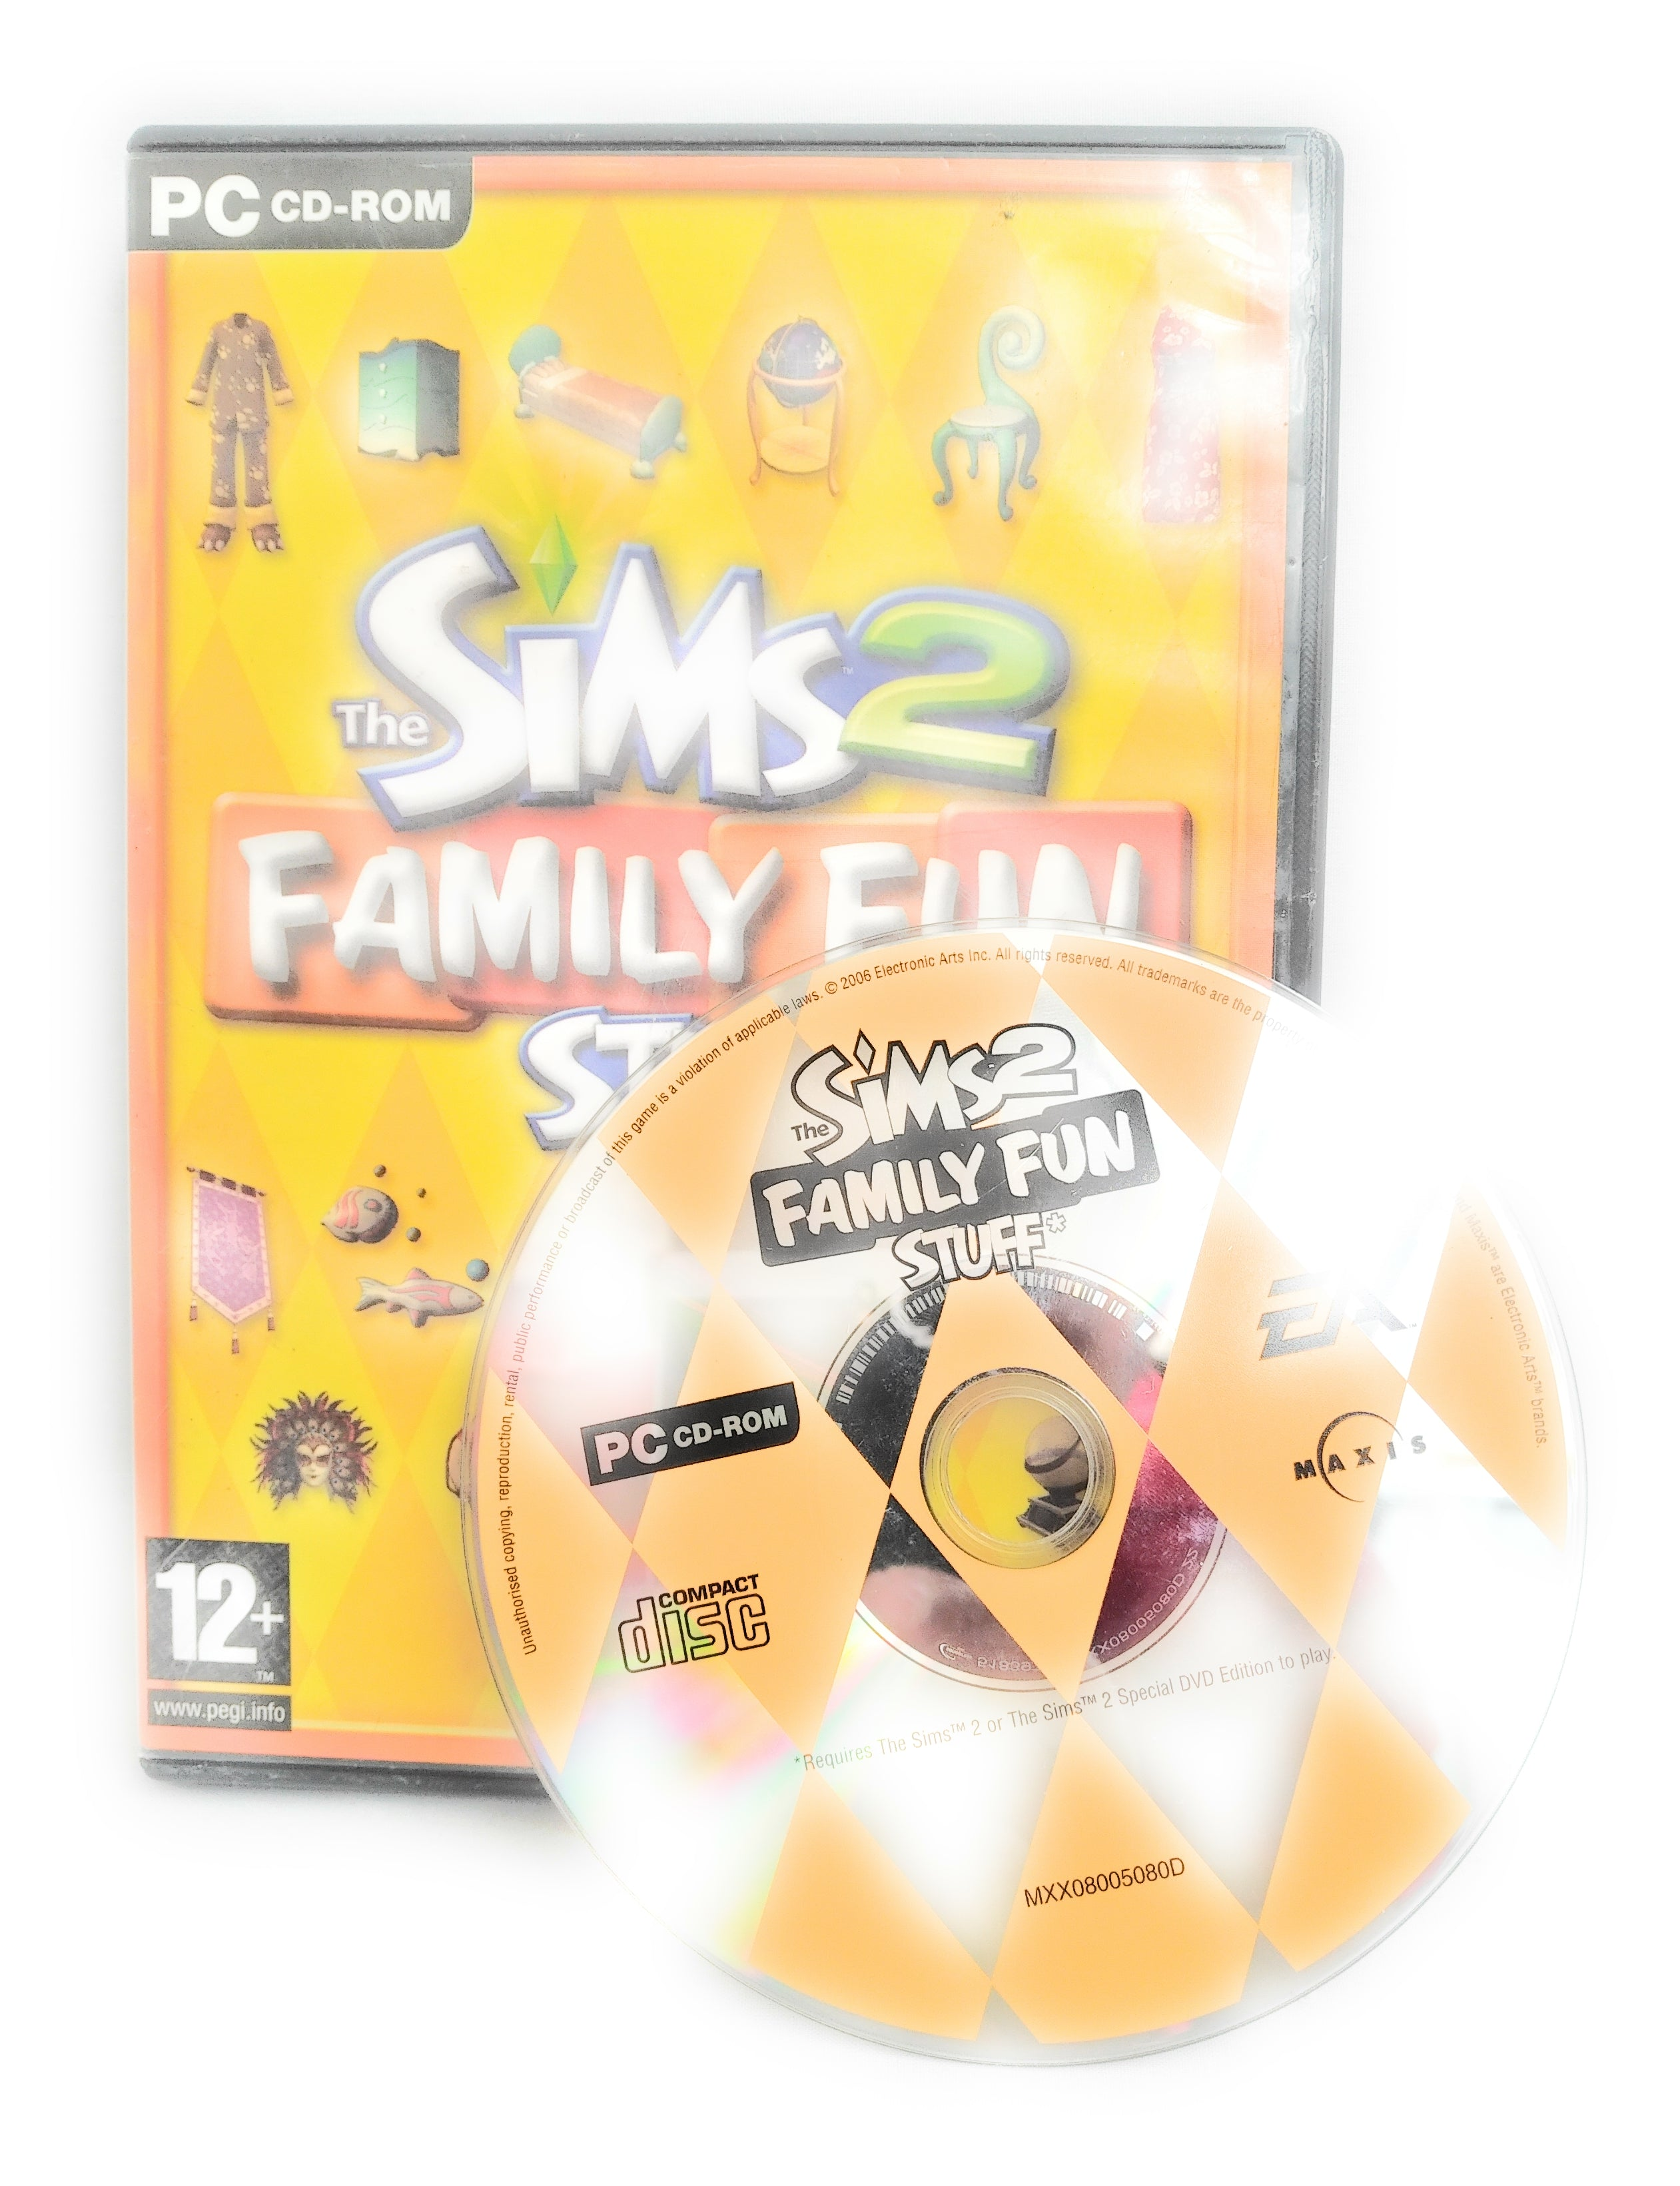 The Sims 2 Family Fun Stuff Expansion Pack